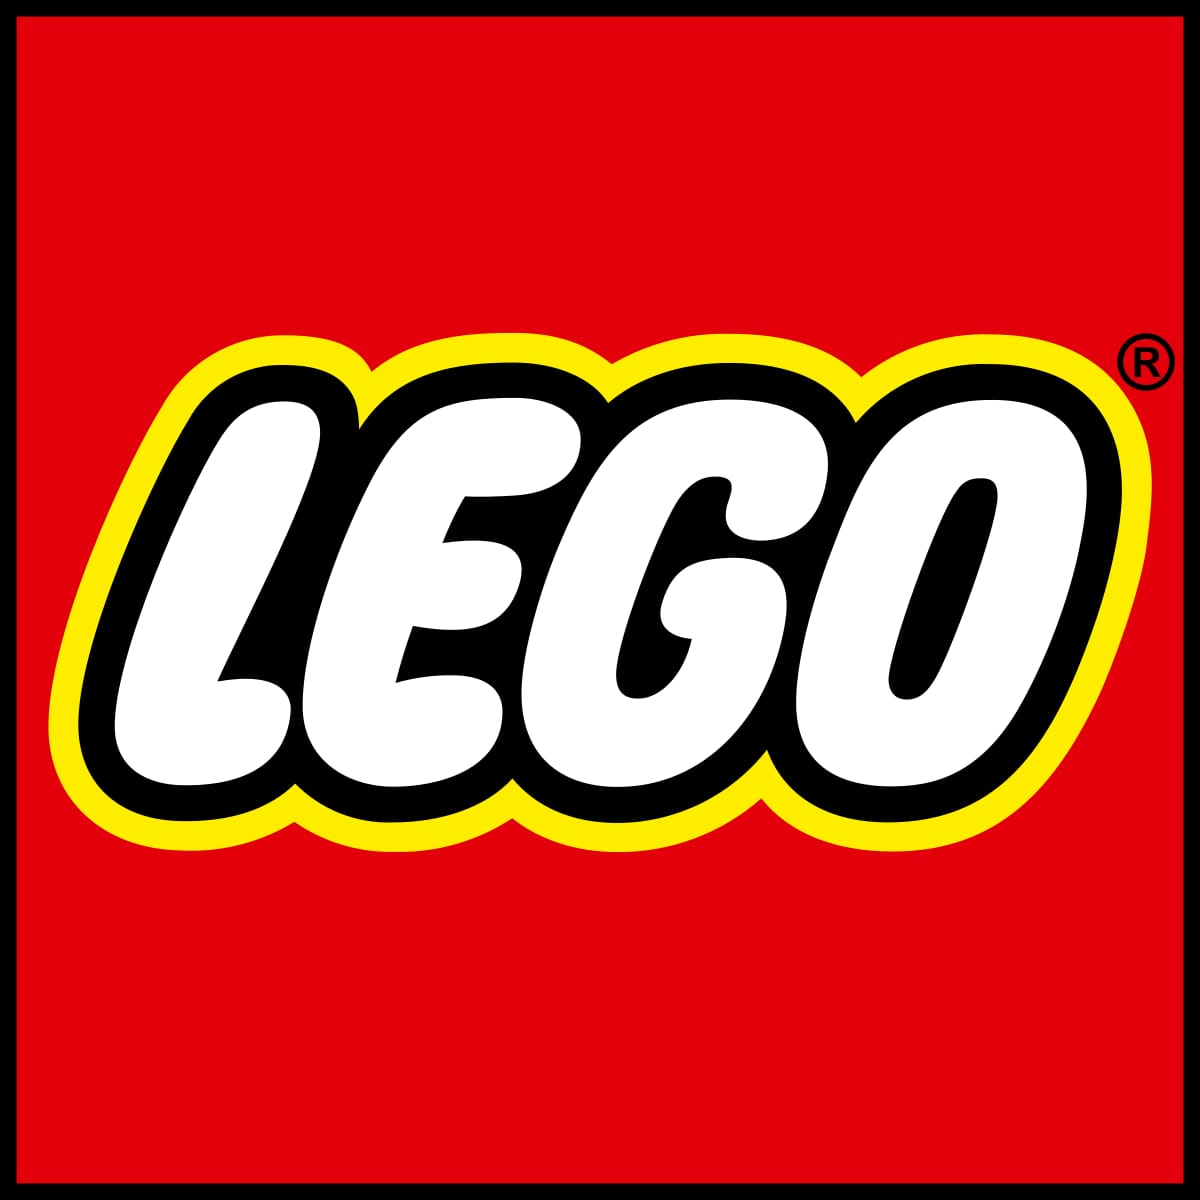 Macys Black Friday Lego sale Live Up to 20-30% off.